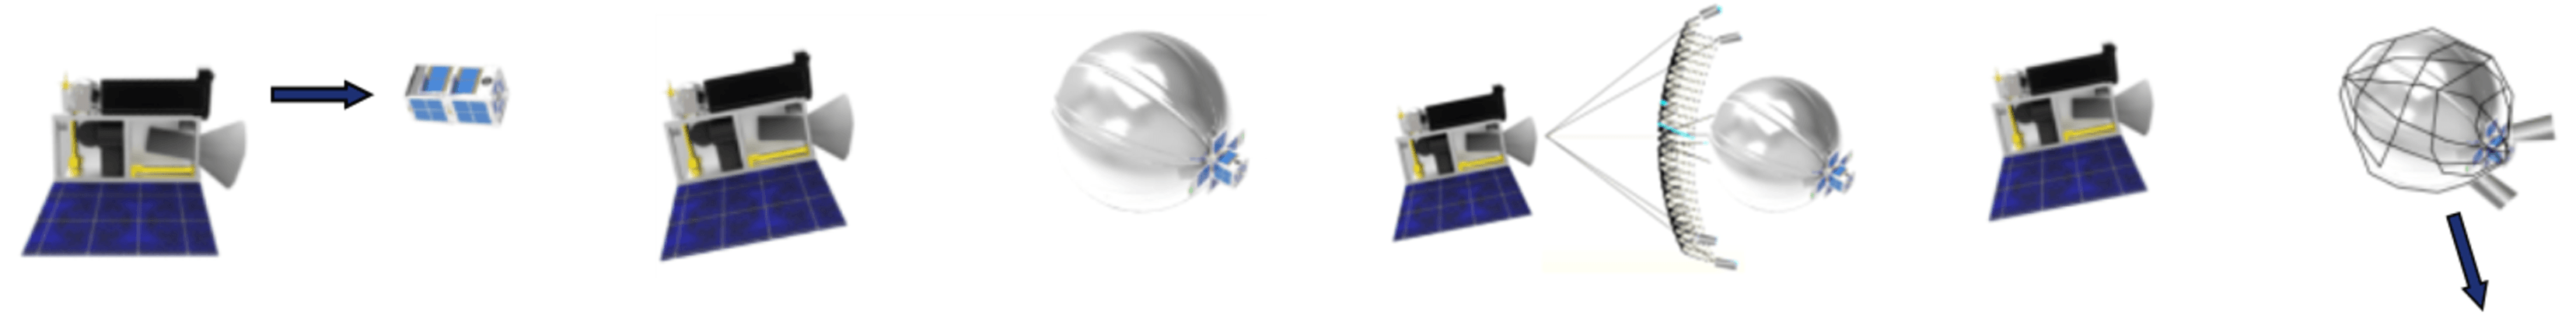 A small satellite inflates a balloon, and is captured by RemoveDebris' net.